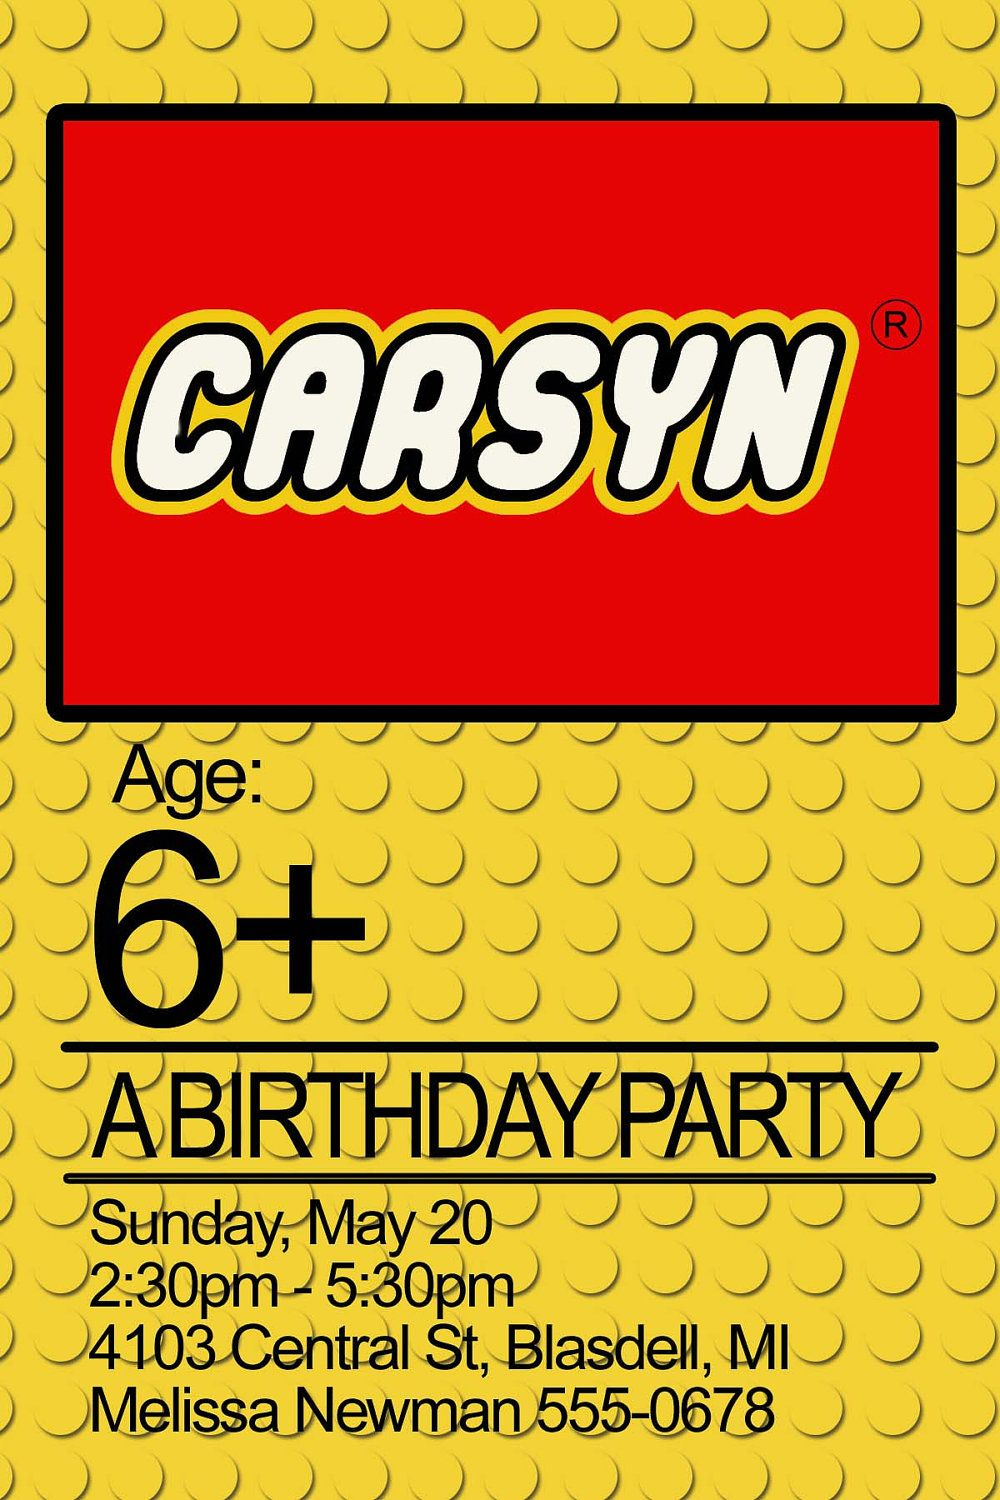 lego birthday party invitation - PRINTABLE: order this invitation ...